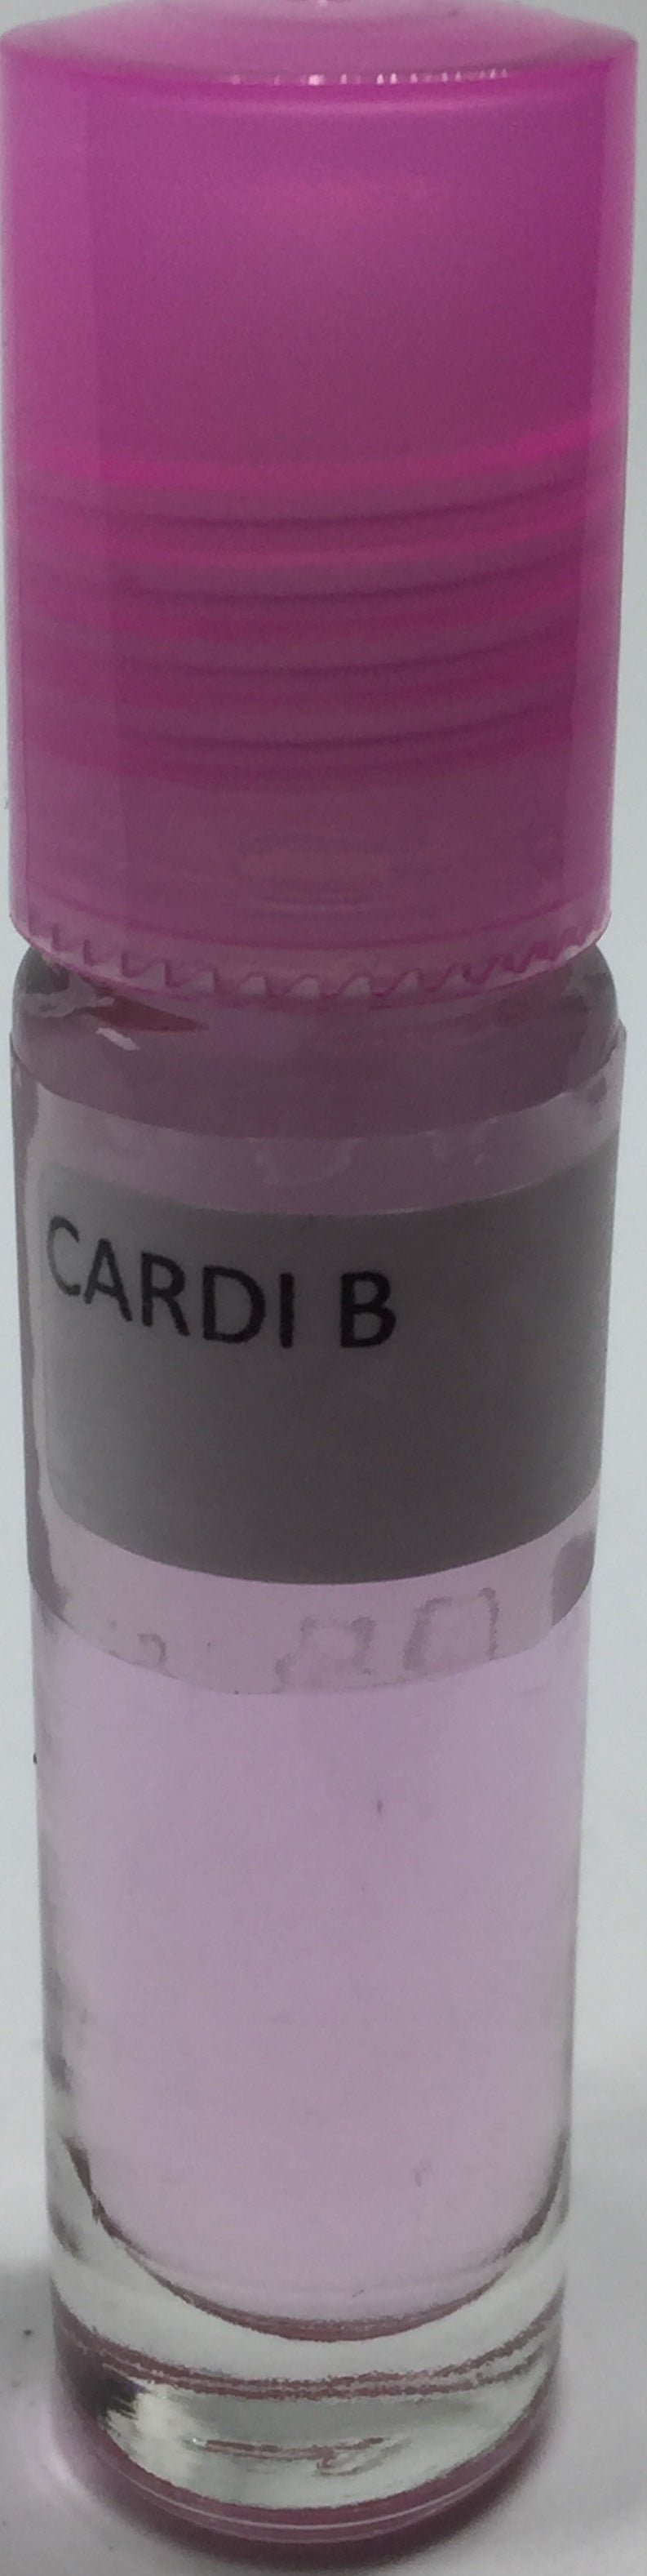 Cardi B:Fragrance(Purfume)Body Oil Women